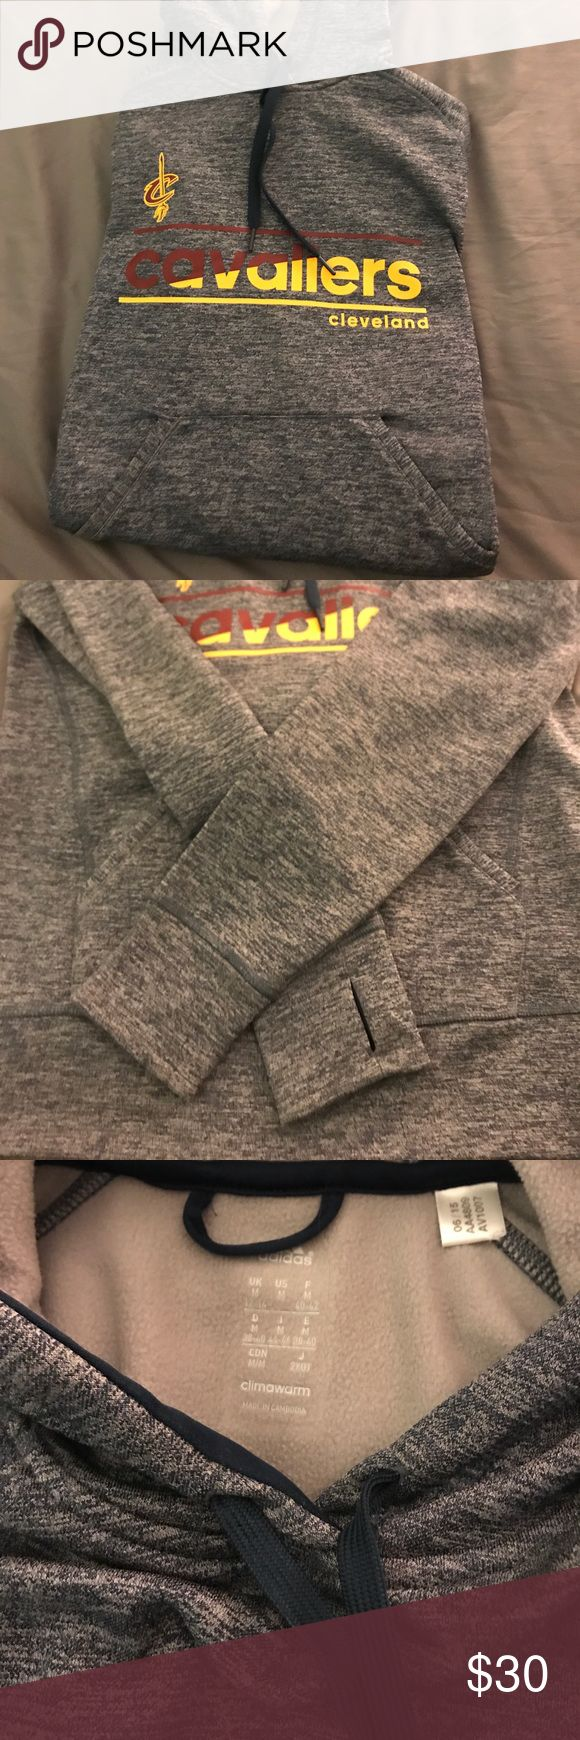 Adidas Cavs sweatshirt Perfect condition! Heathered navy and grey with silver adidas logo, and the maroon and gold cavs logo. Super warm hoodie ( climawarm collection) sleeves even have thumb holes! adidas Tops Sweatshirts & Hoodies